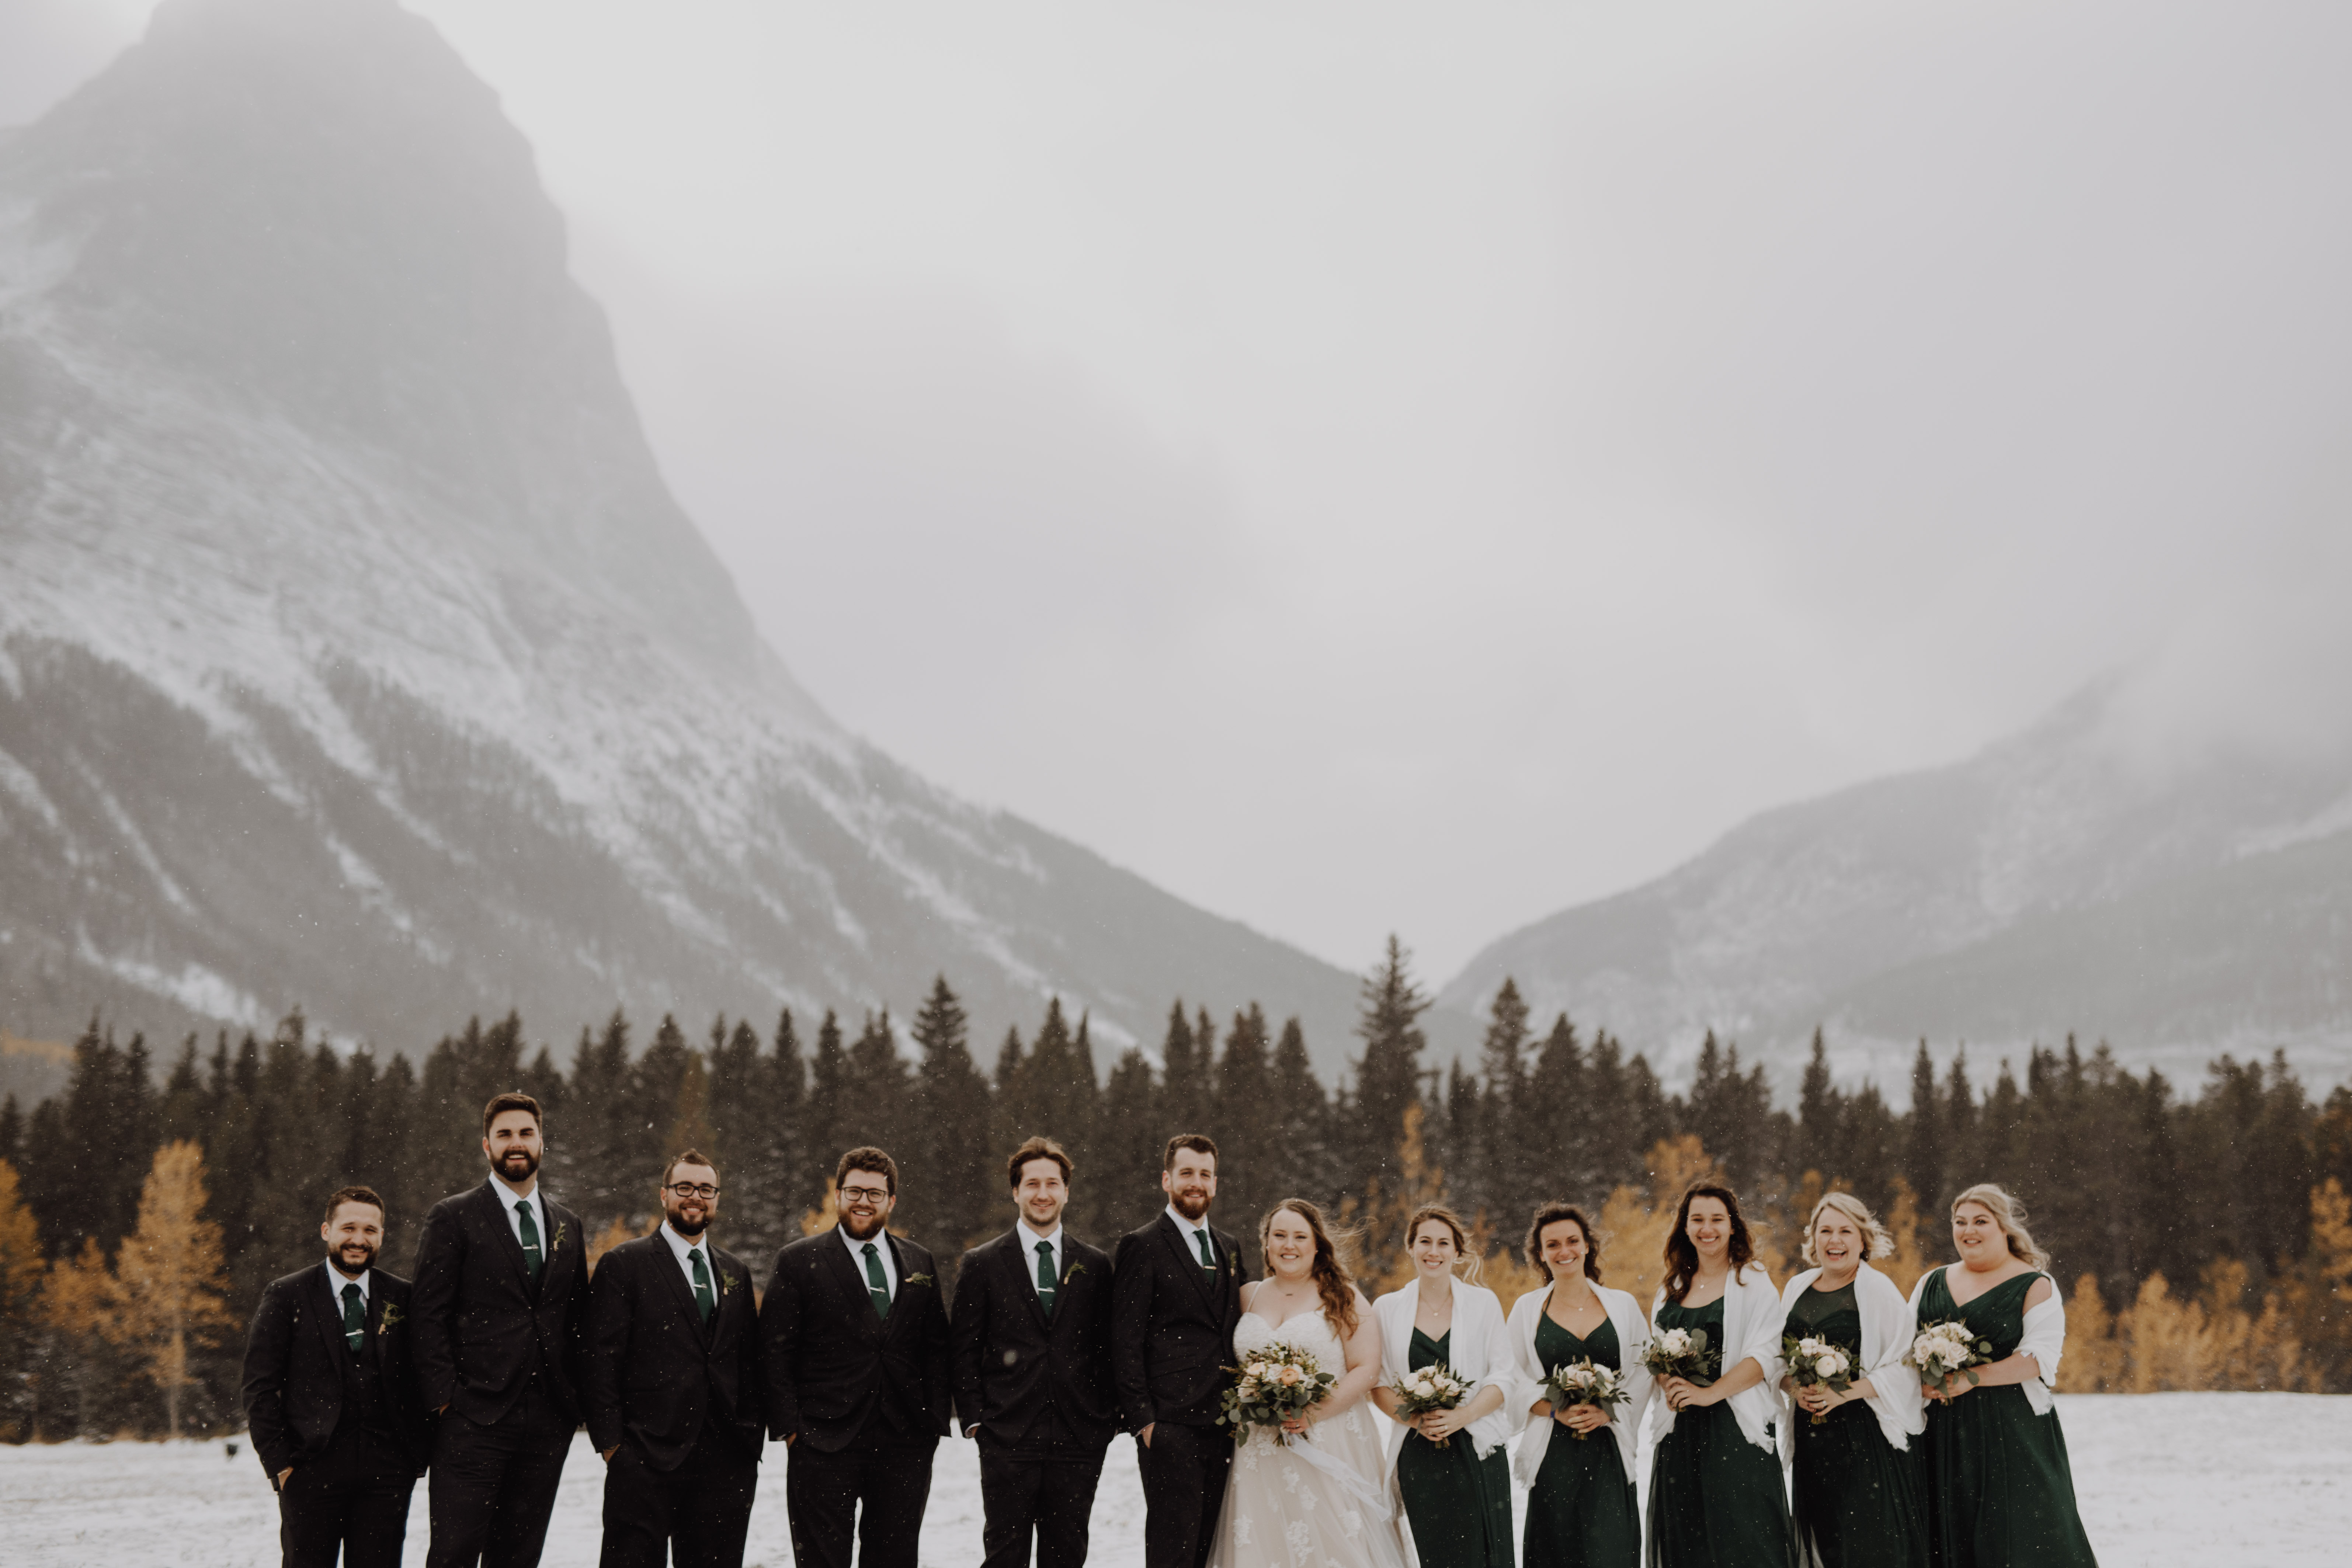 Banff Wedding - wedding party in the snow